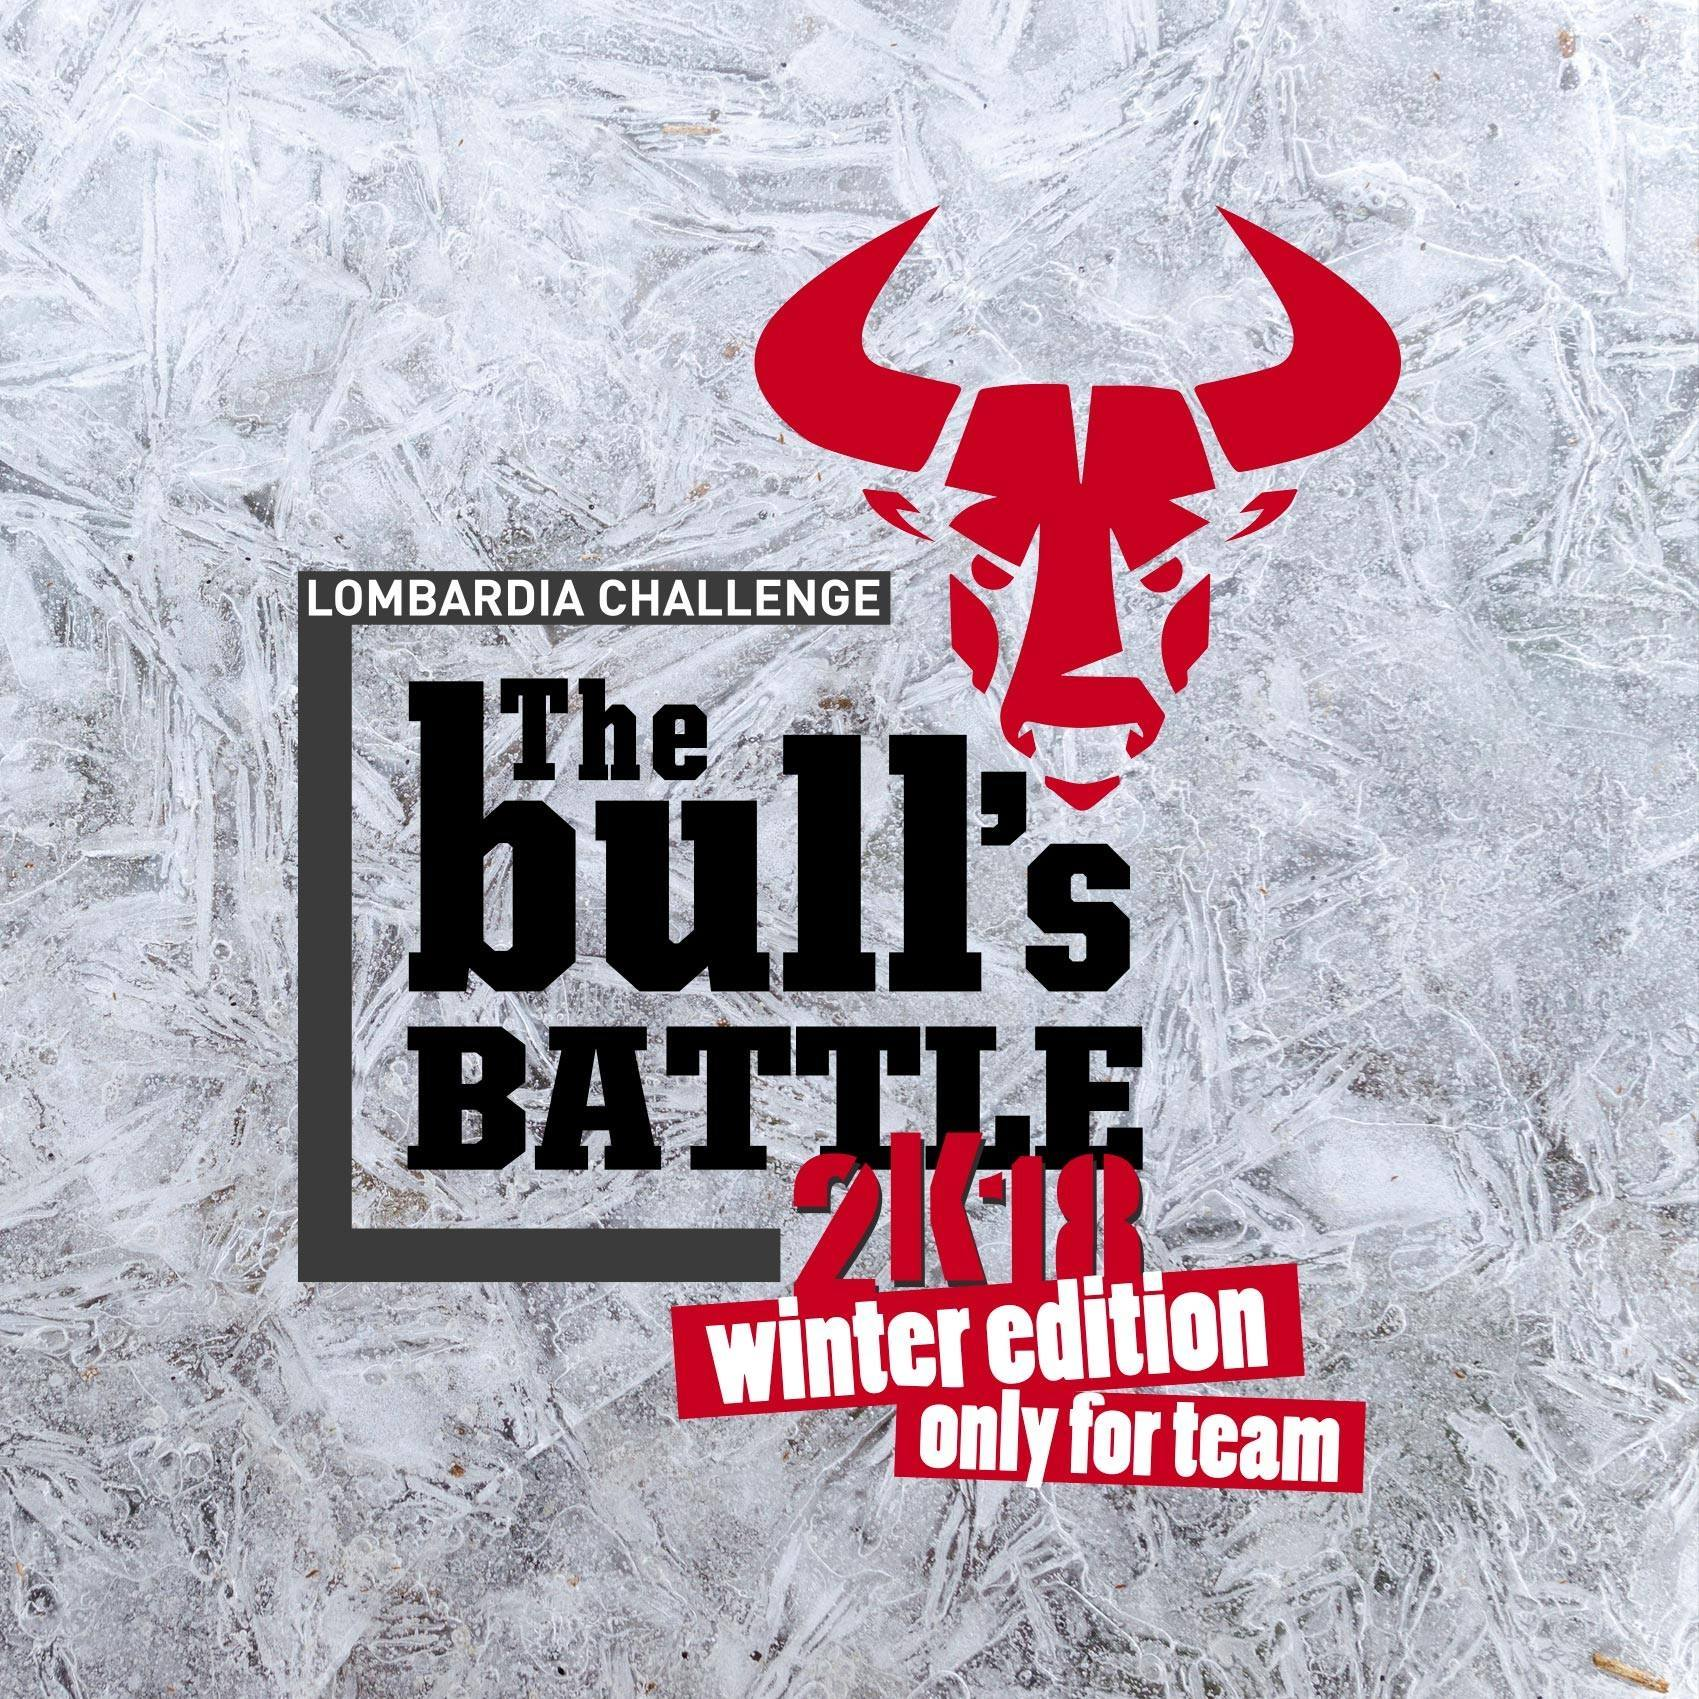 Lombardia Challenge The Bull's Battle Winter Edition - CrossFit competition in Gorgonzola Milan Italy - Laguna CrossFit | The SunWod - viaggi e alloggi